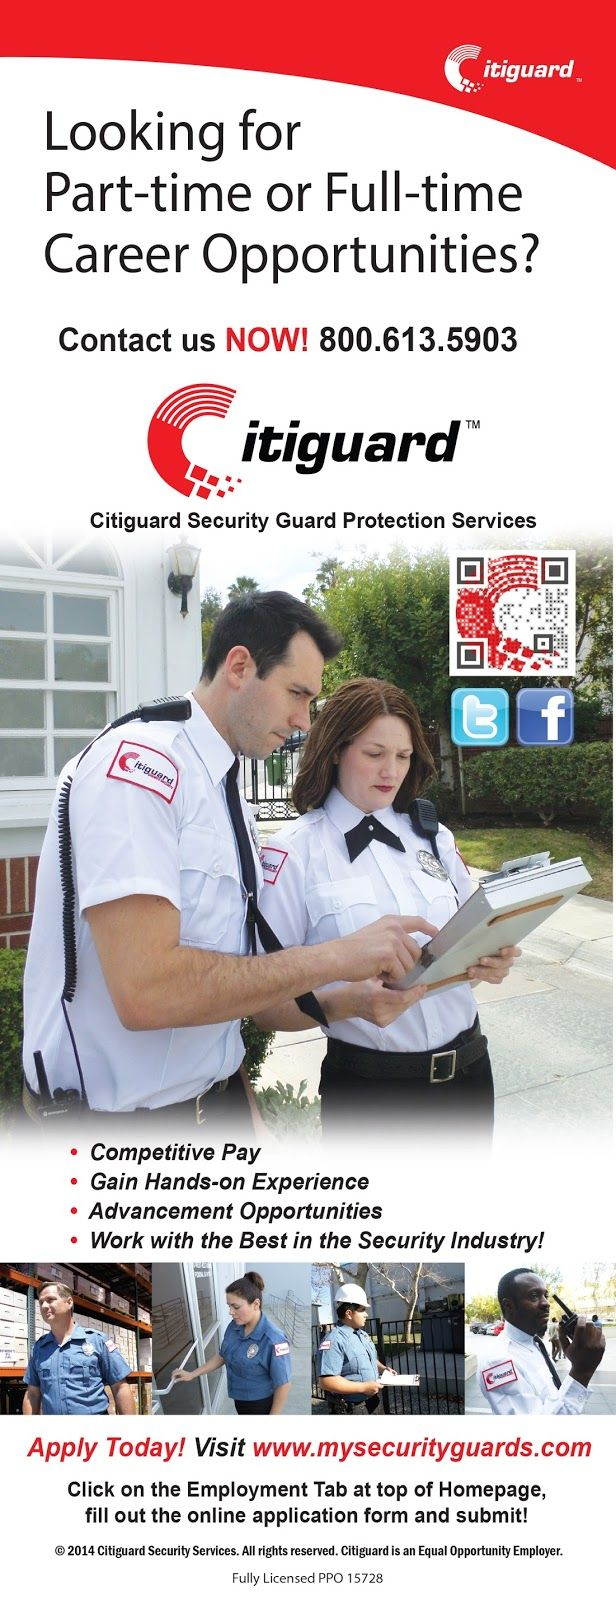 Security Guard Company Los Angeles Now Hiring Security Guards In Los Angeles And Orange County Security Guard Companies Security Guard Armed Security Guard